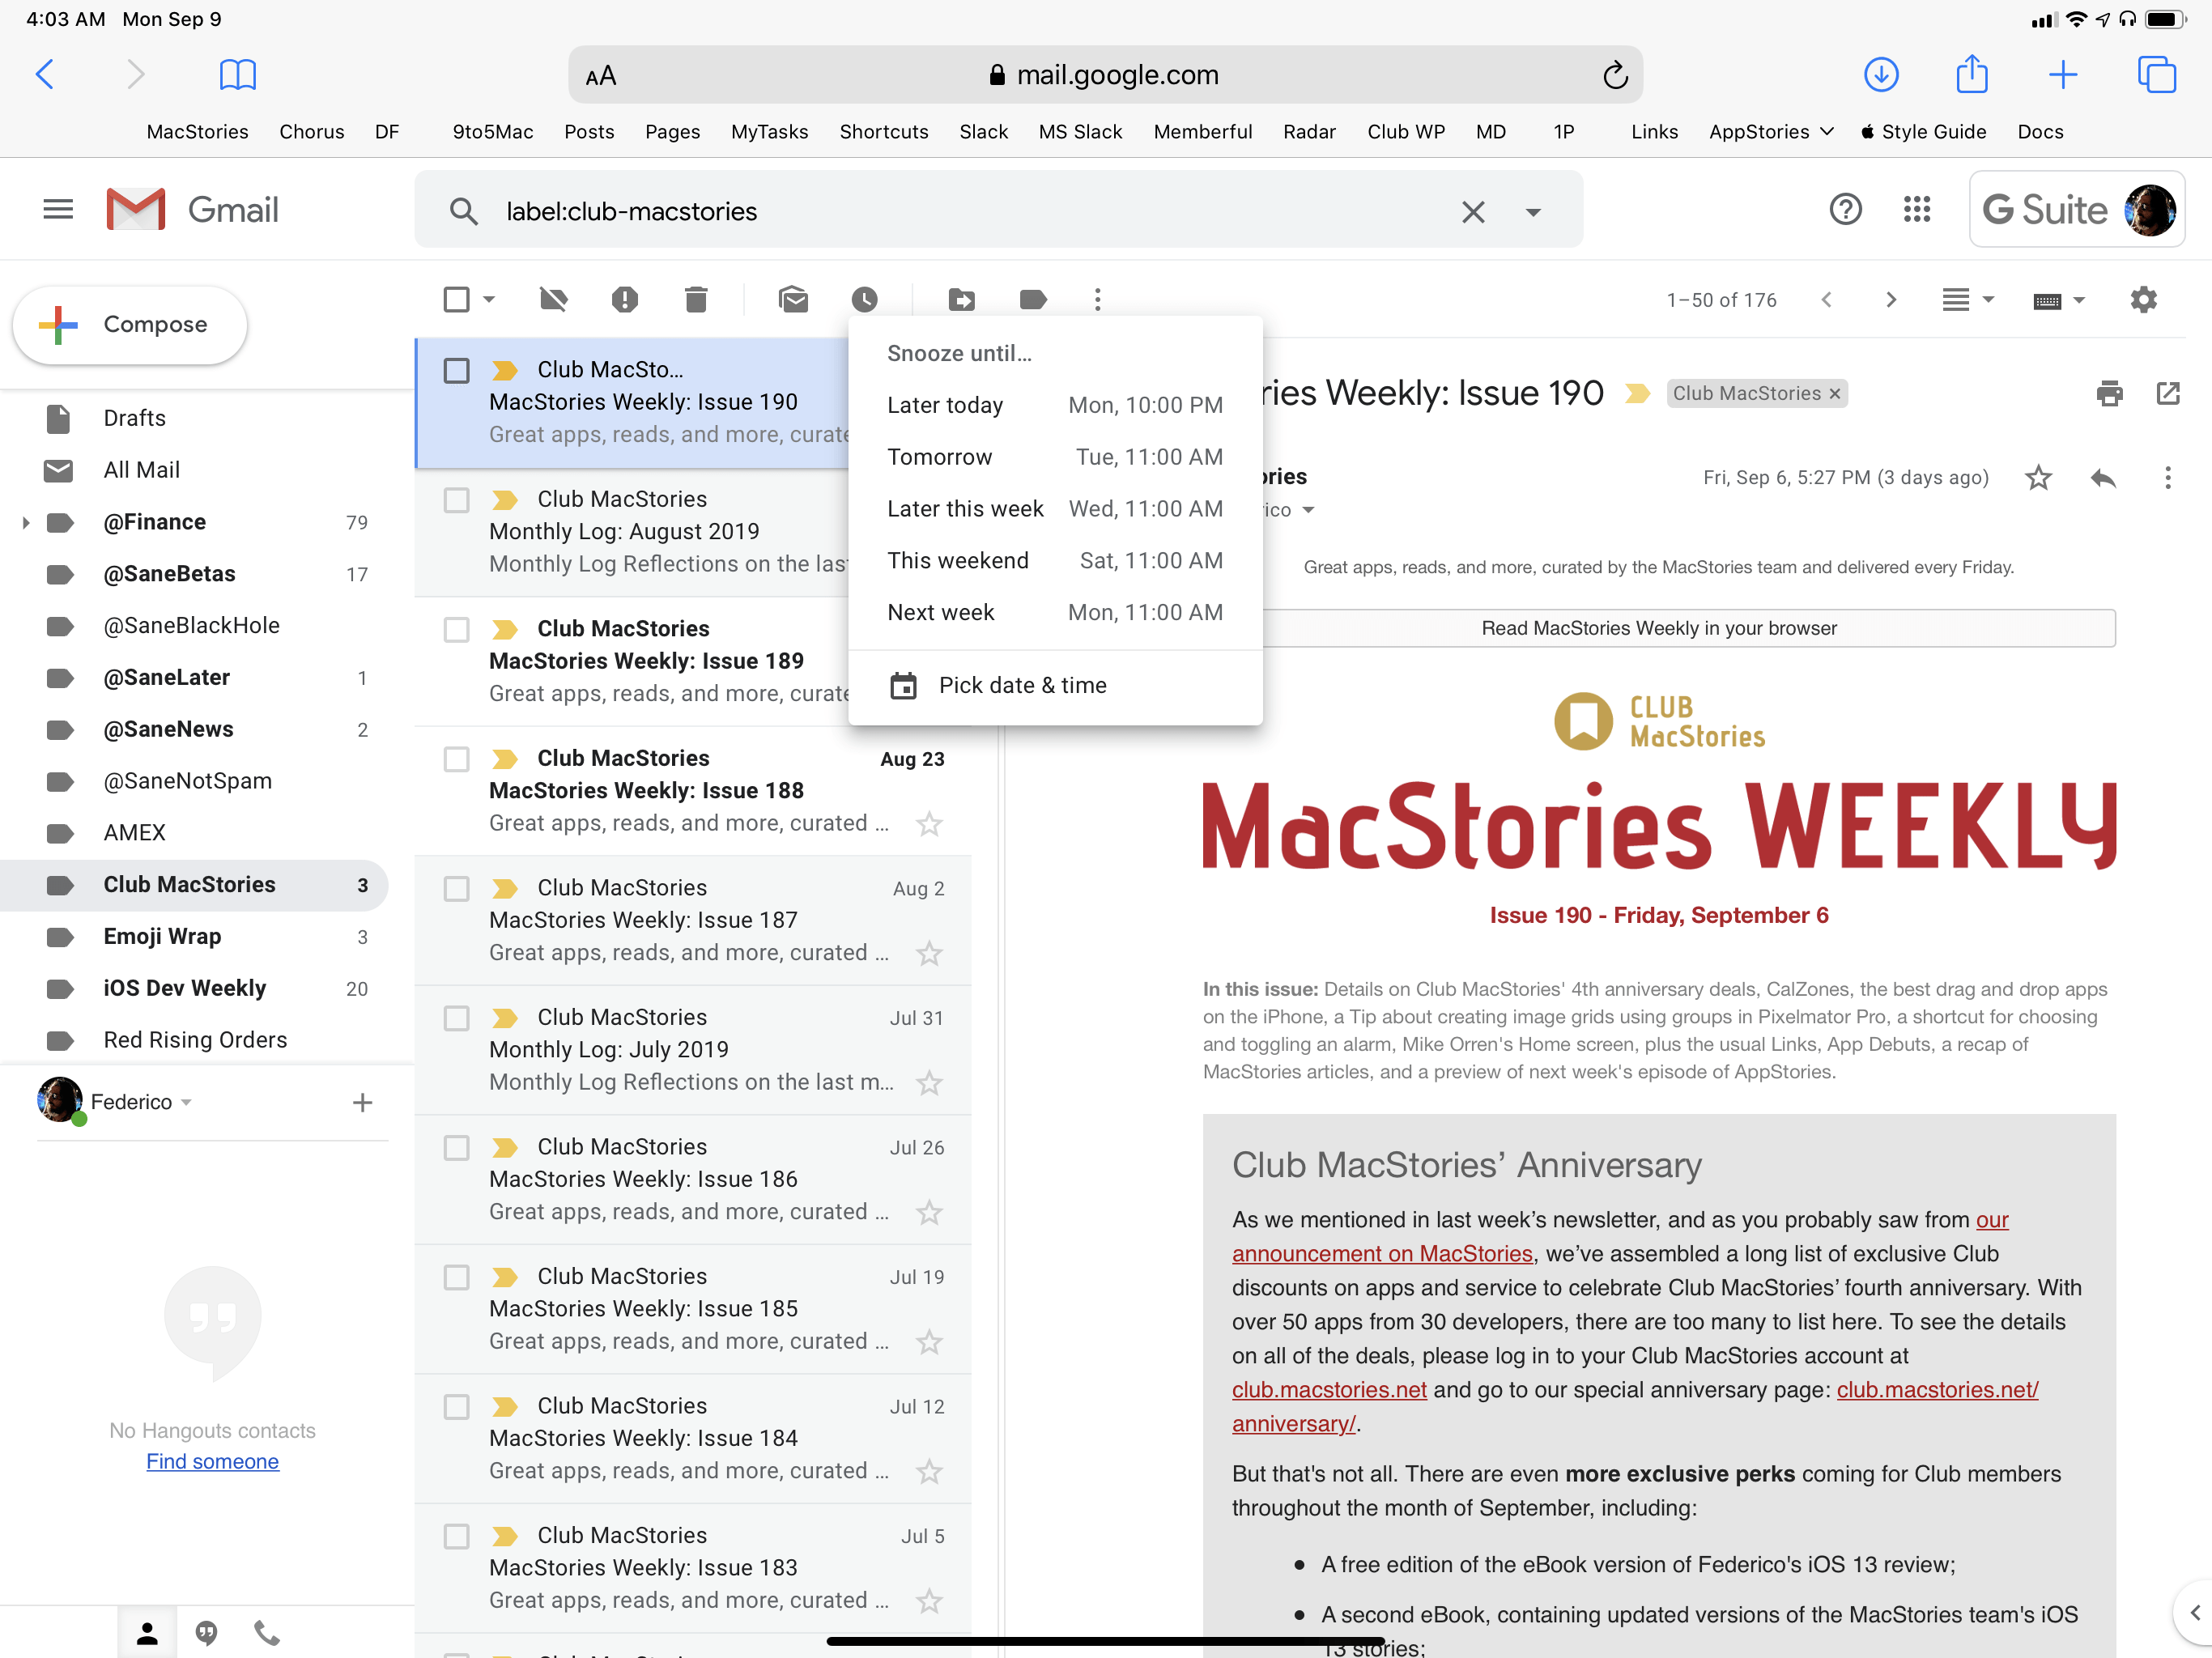 The full Gmail web app experience, now entirely usable in Safari for iPad.